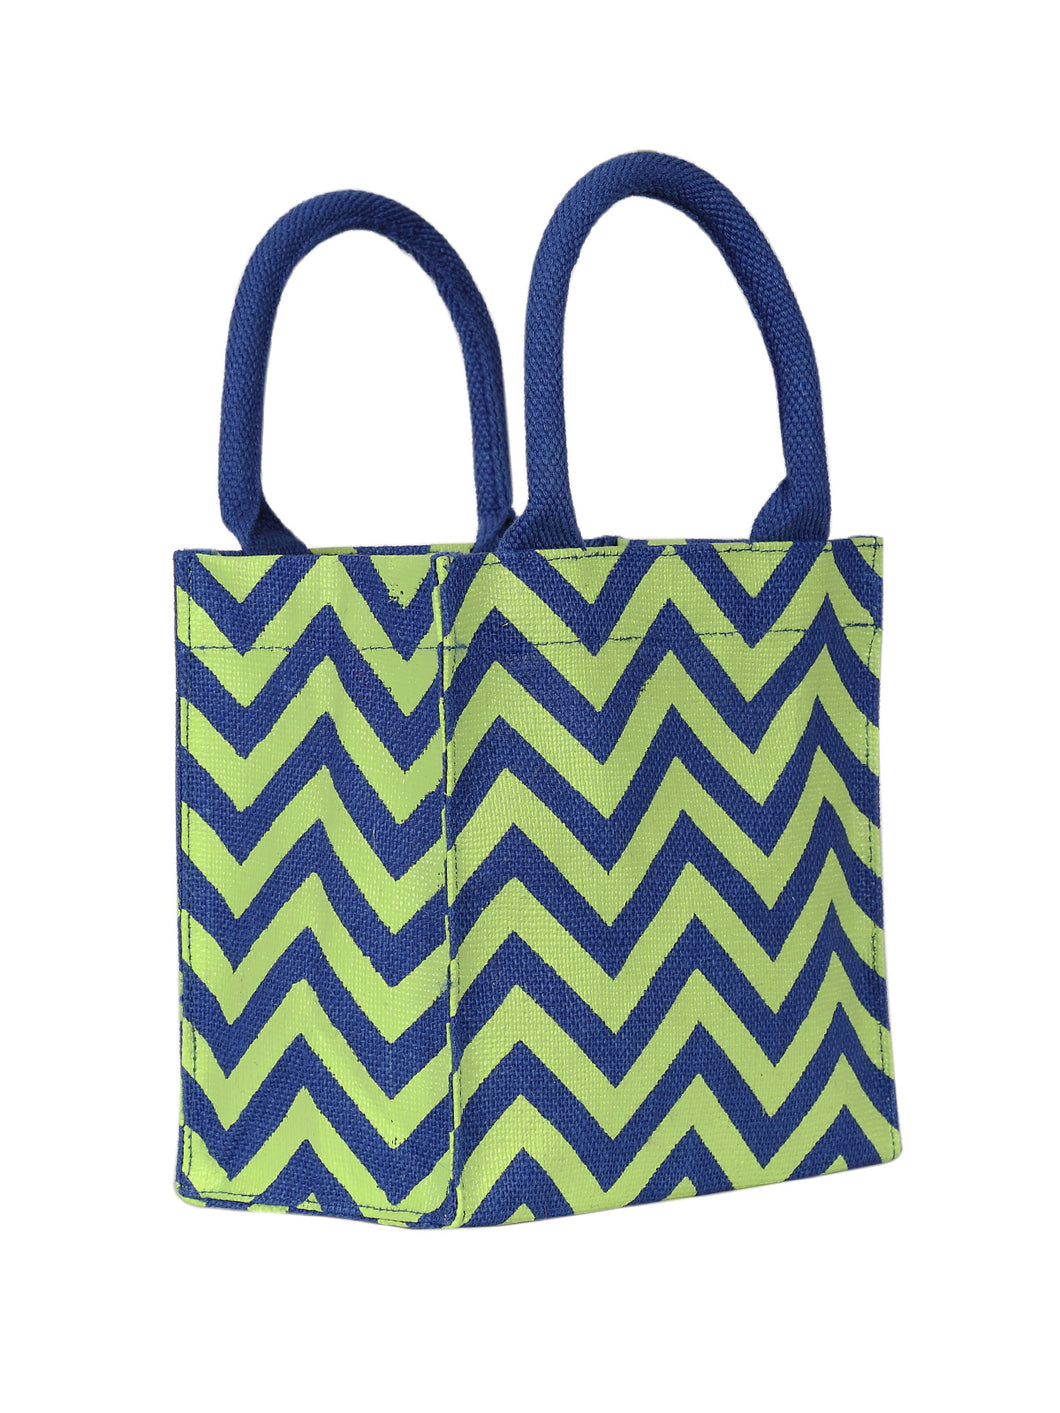 8X8 ZIG ZAG LUNCH (B-148-BLUE)